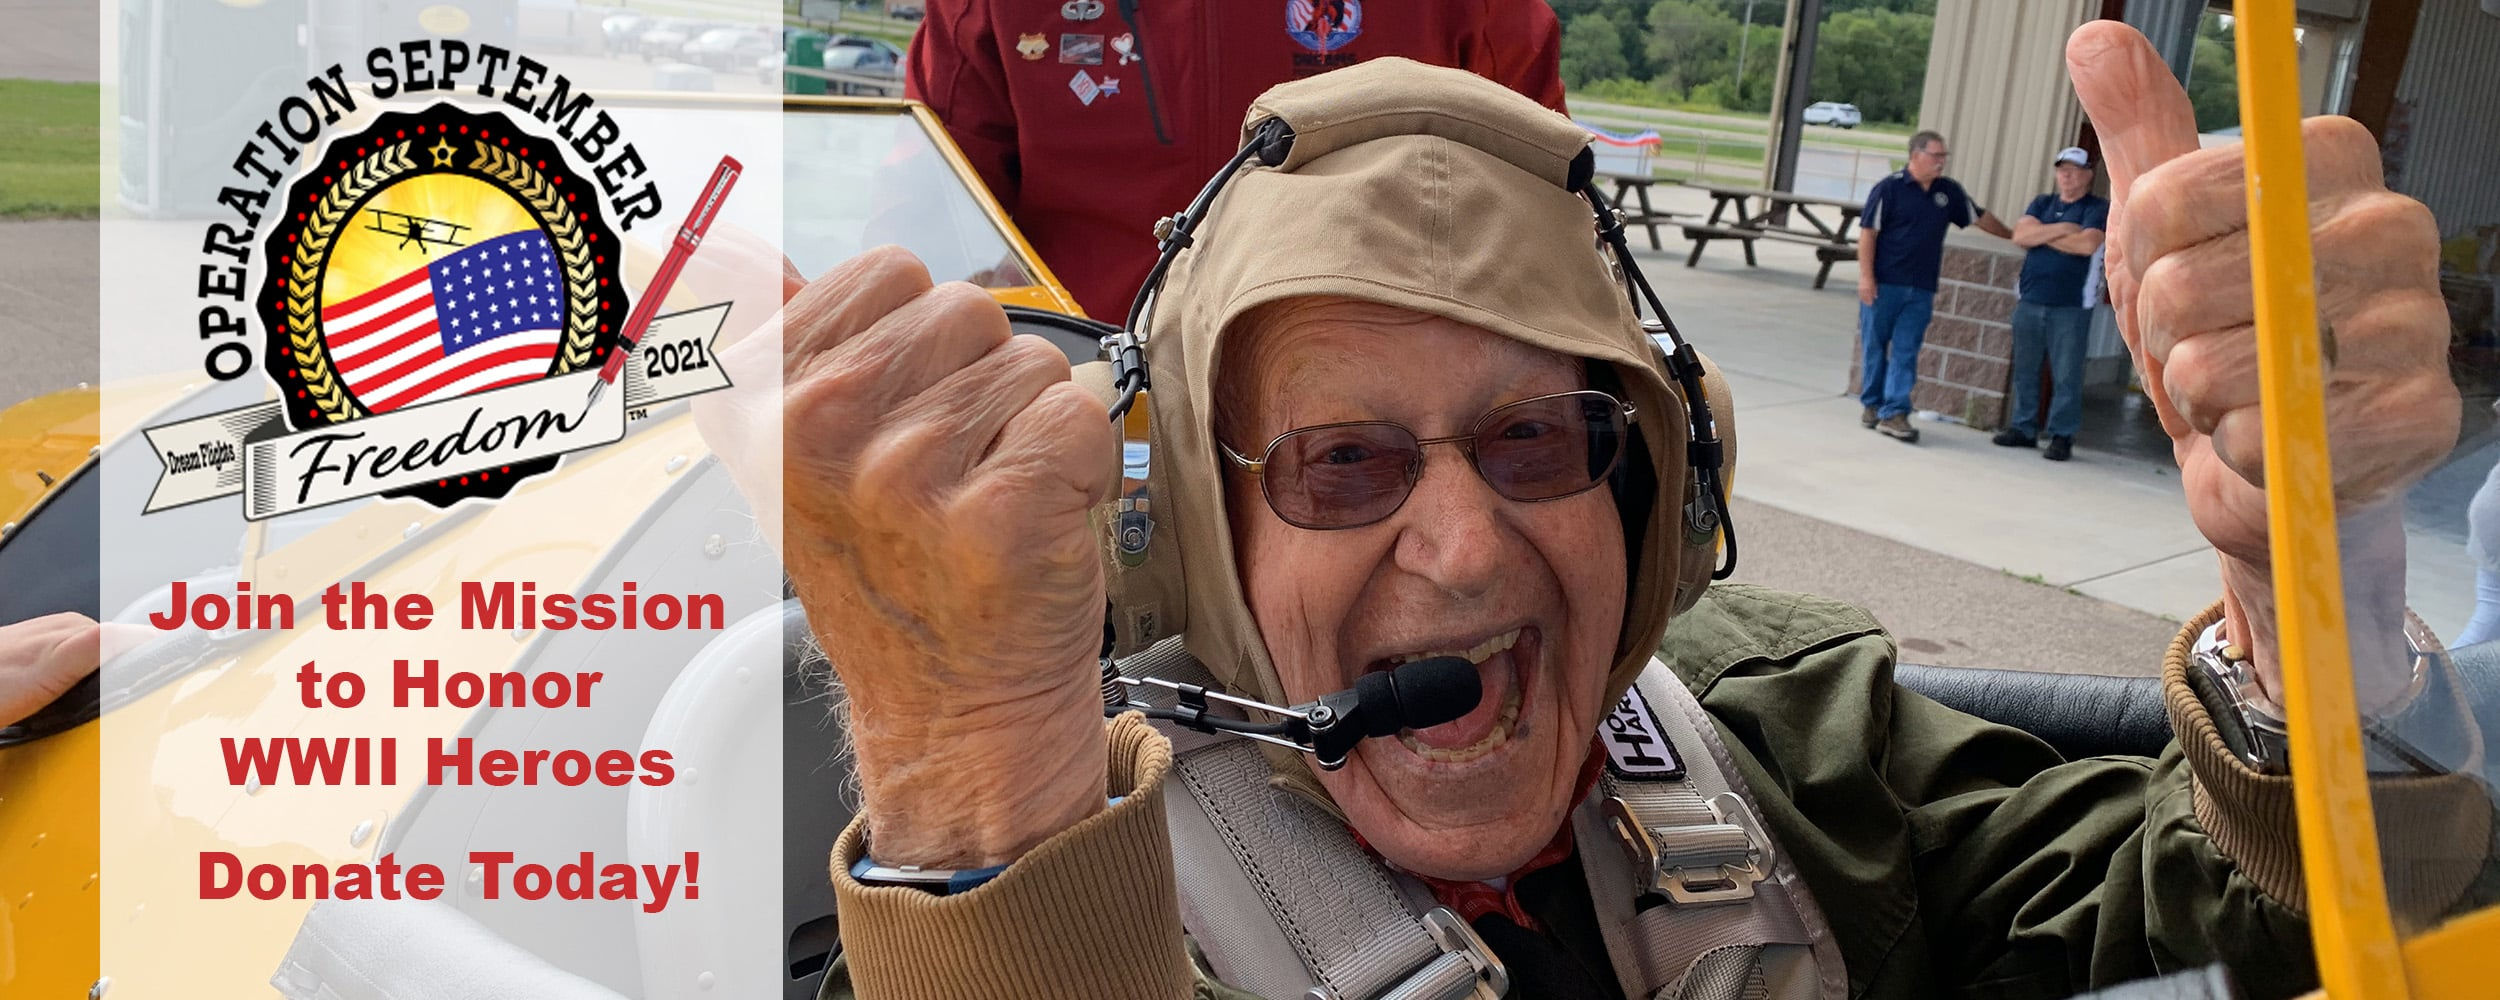 Smiling Veteran with Thumbs Up in Cockpit web 1